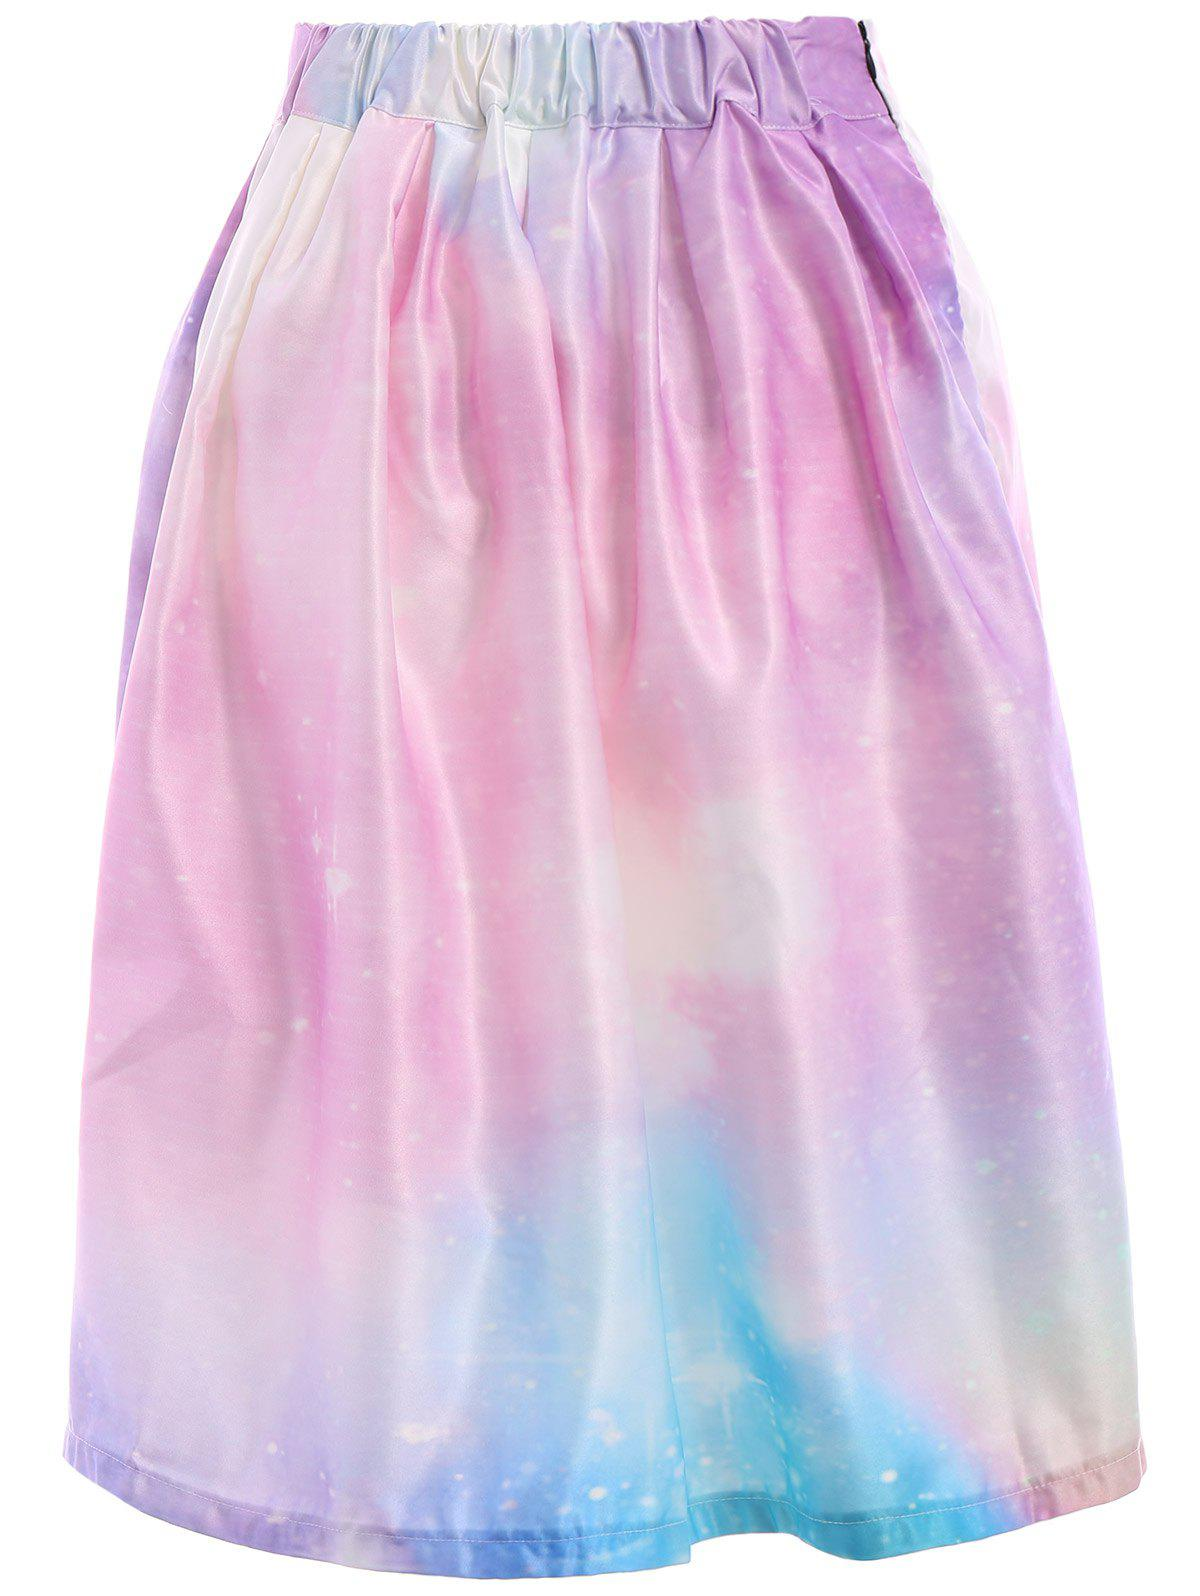 Chic Starry Sky Printed High Waist Pleated Trippy Skirt For Women - COLORMIX M